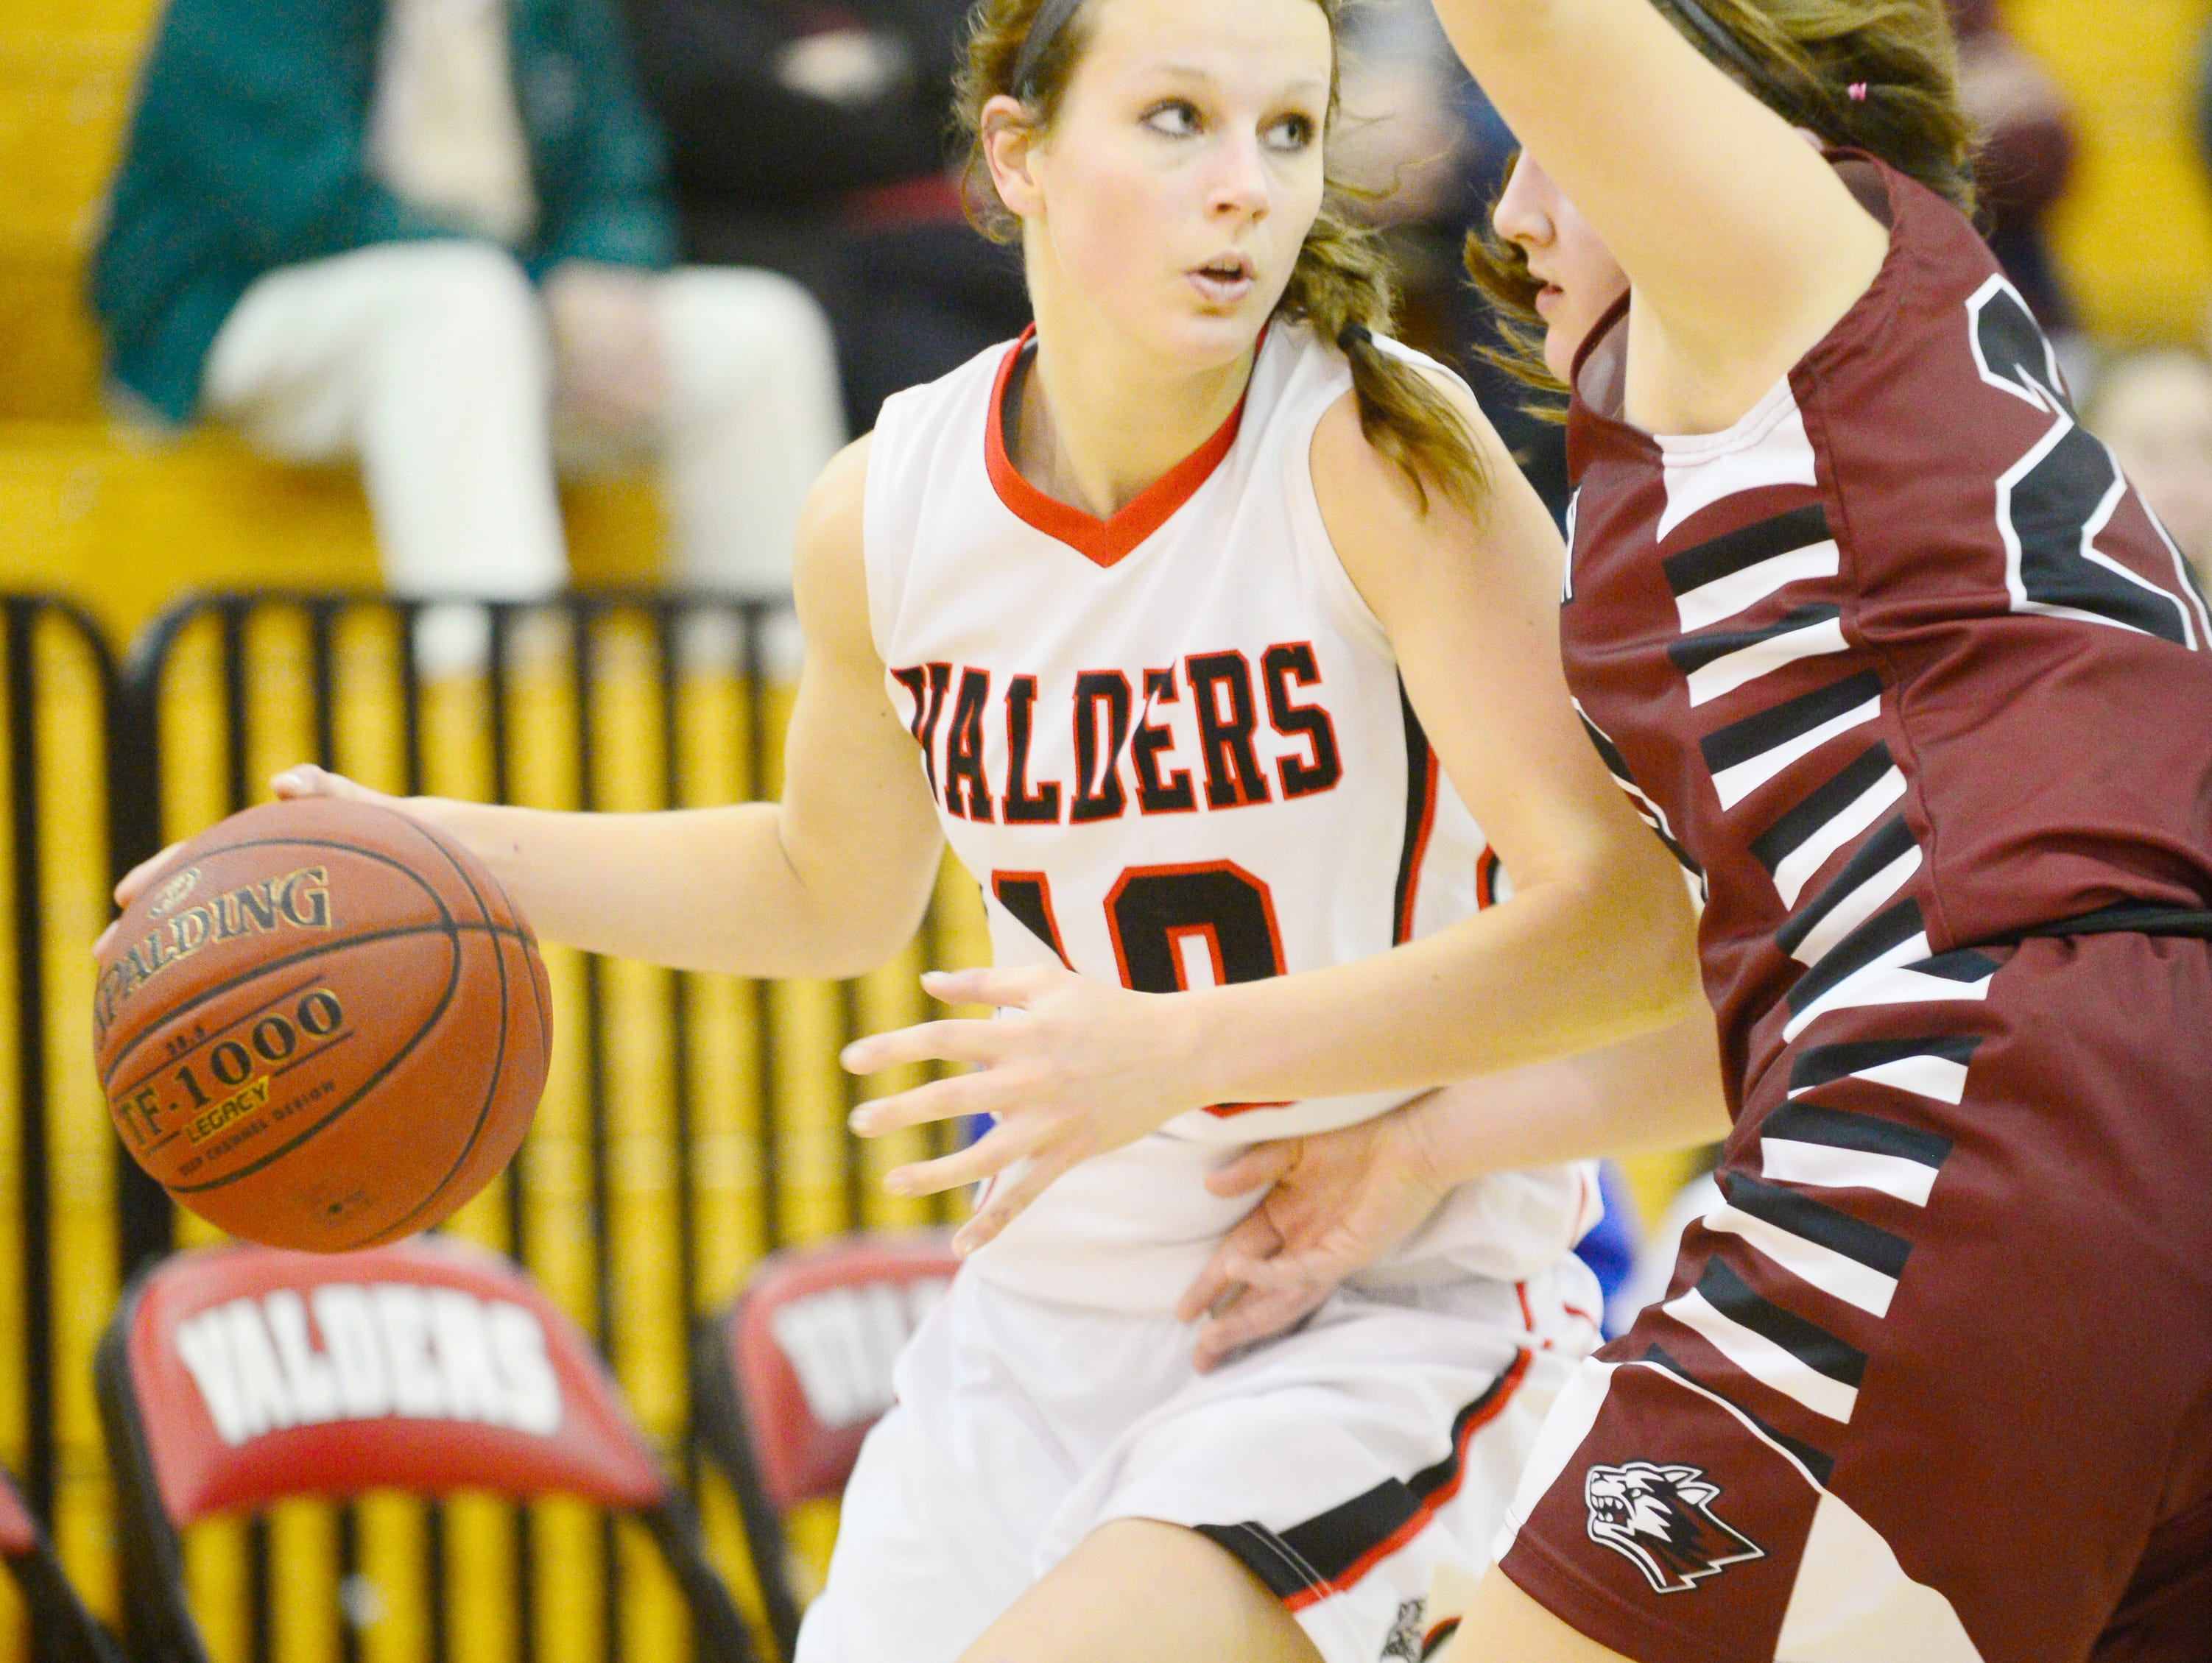 Valders' Conner Grall erupted onto the scene last season, being named Olympian Conference Player of the Year as a junior.